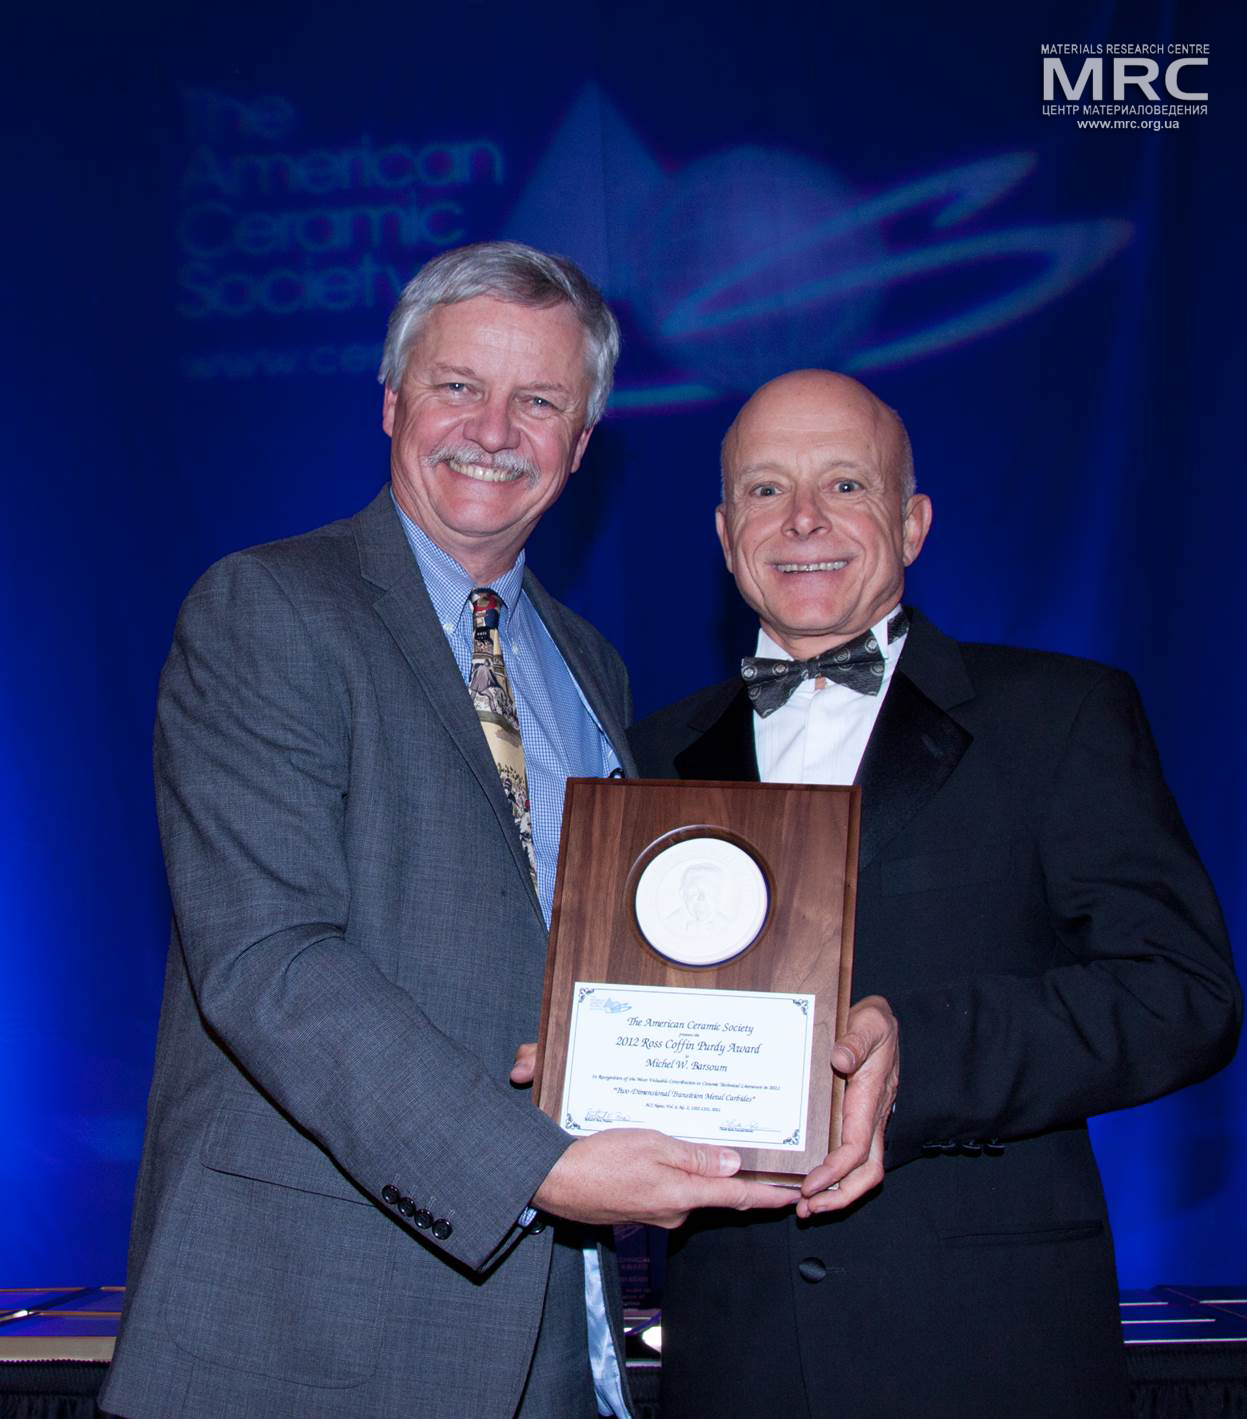 Prof Michael Barsum, Drexel University, was awarded with ACerS' Ross Coffin Purdy Award, ACerS 115th Annual Meeting held in conjunction with MS&T'13 in Montreal, Canada from October 2013